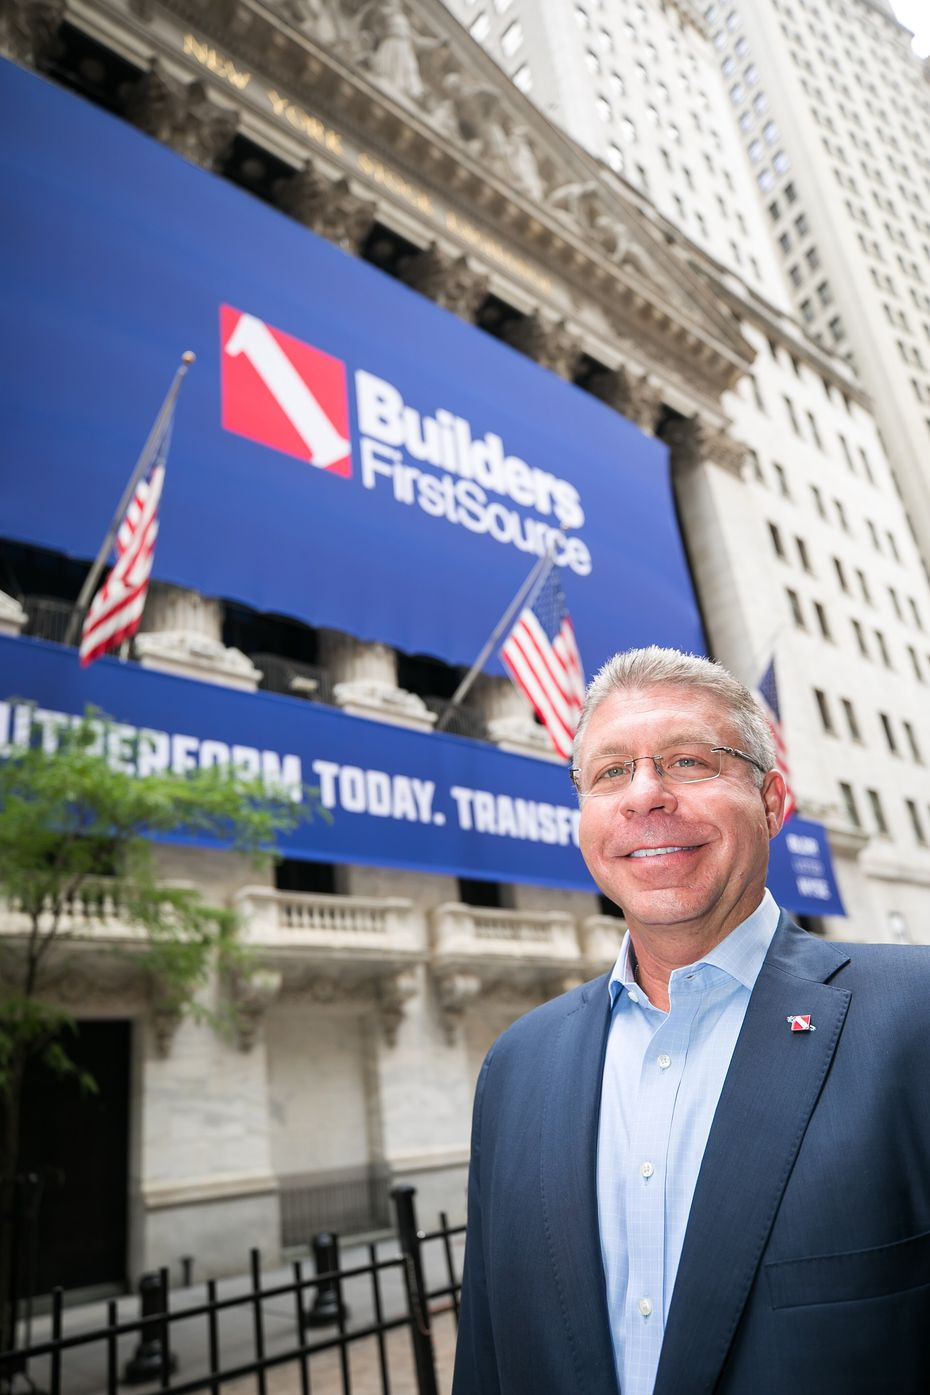 Builders FirstSource CEO Dave Flitman outside the New York Stock Exchange.